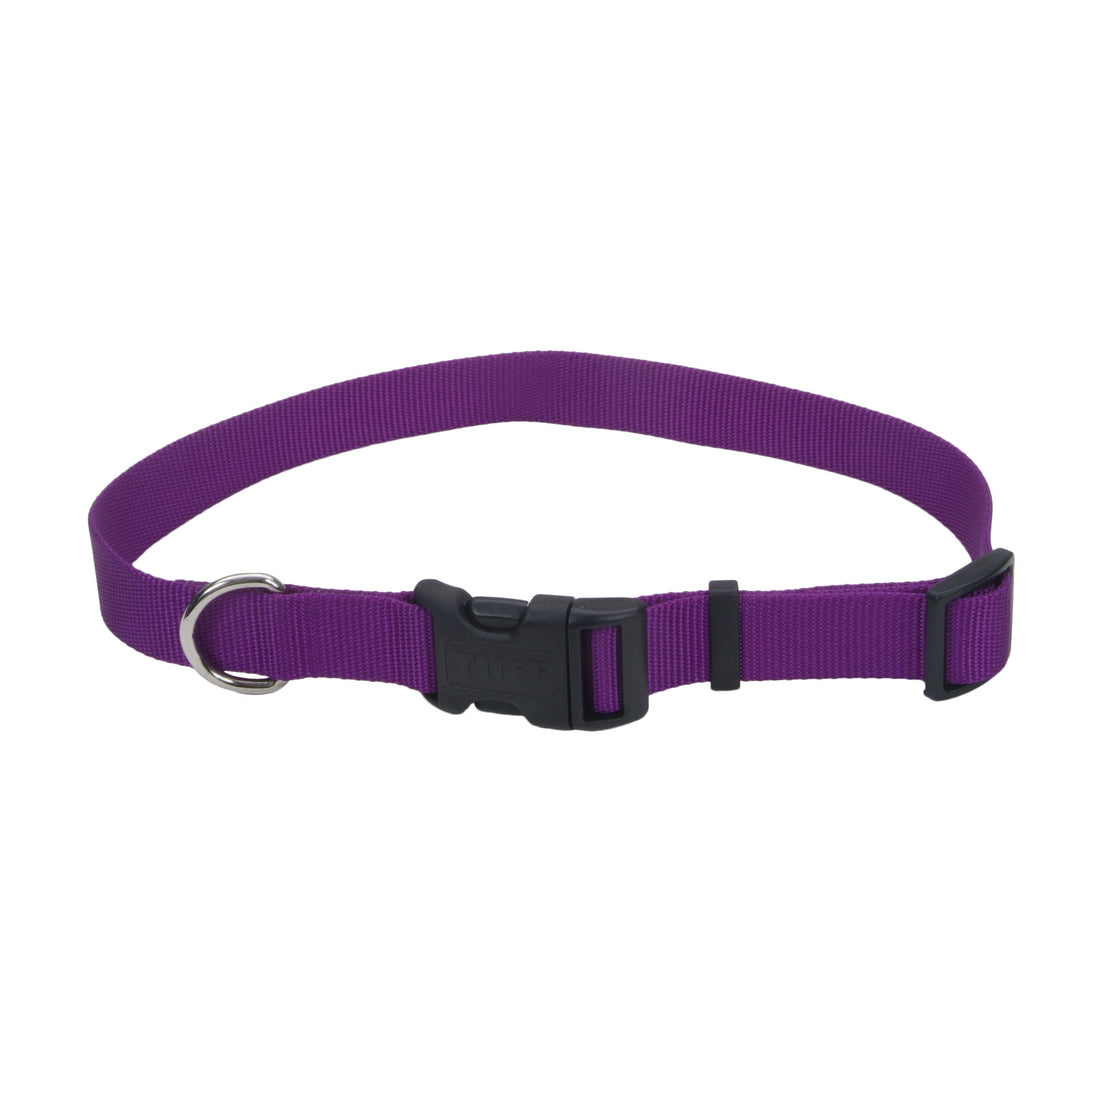 Coastal Adjustable Nylon Collar with Tuff Buckle Small Purple